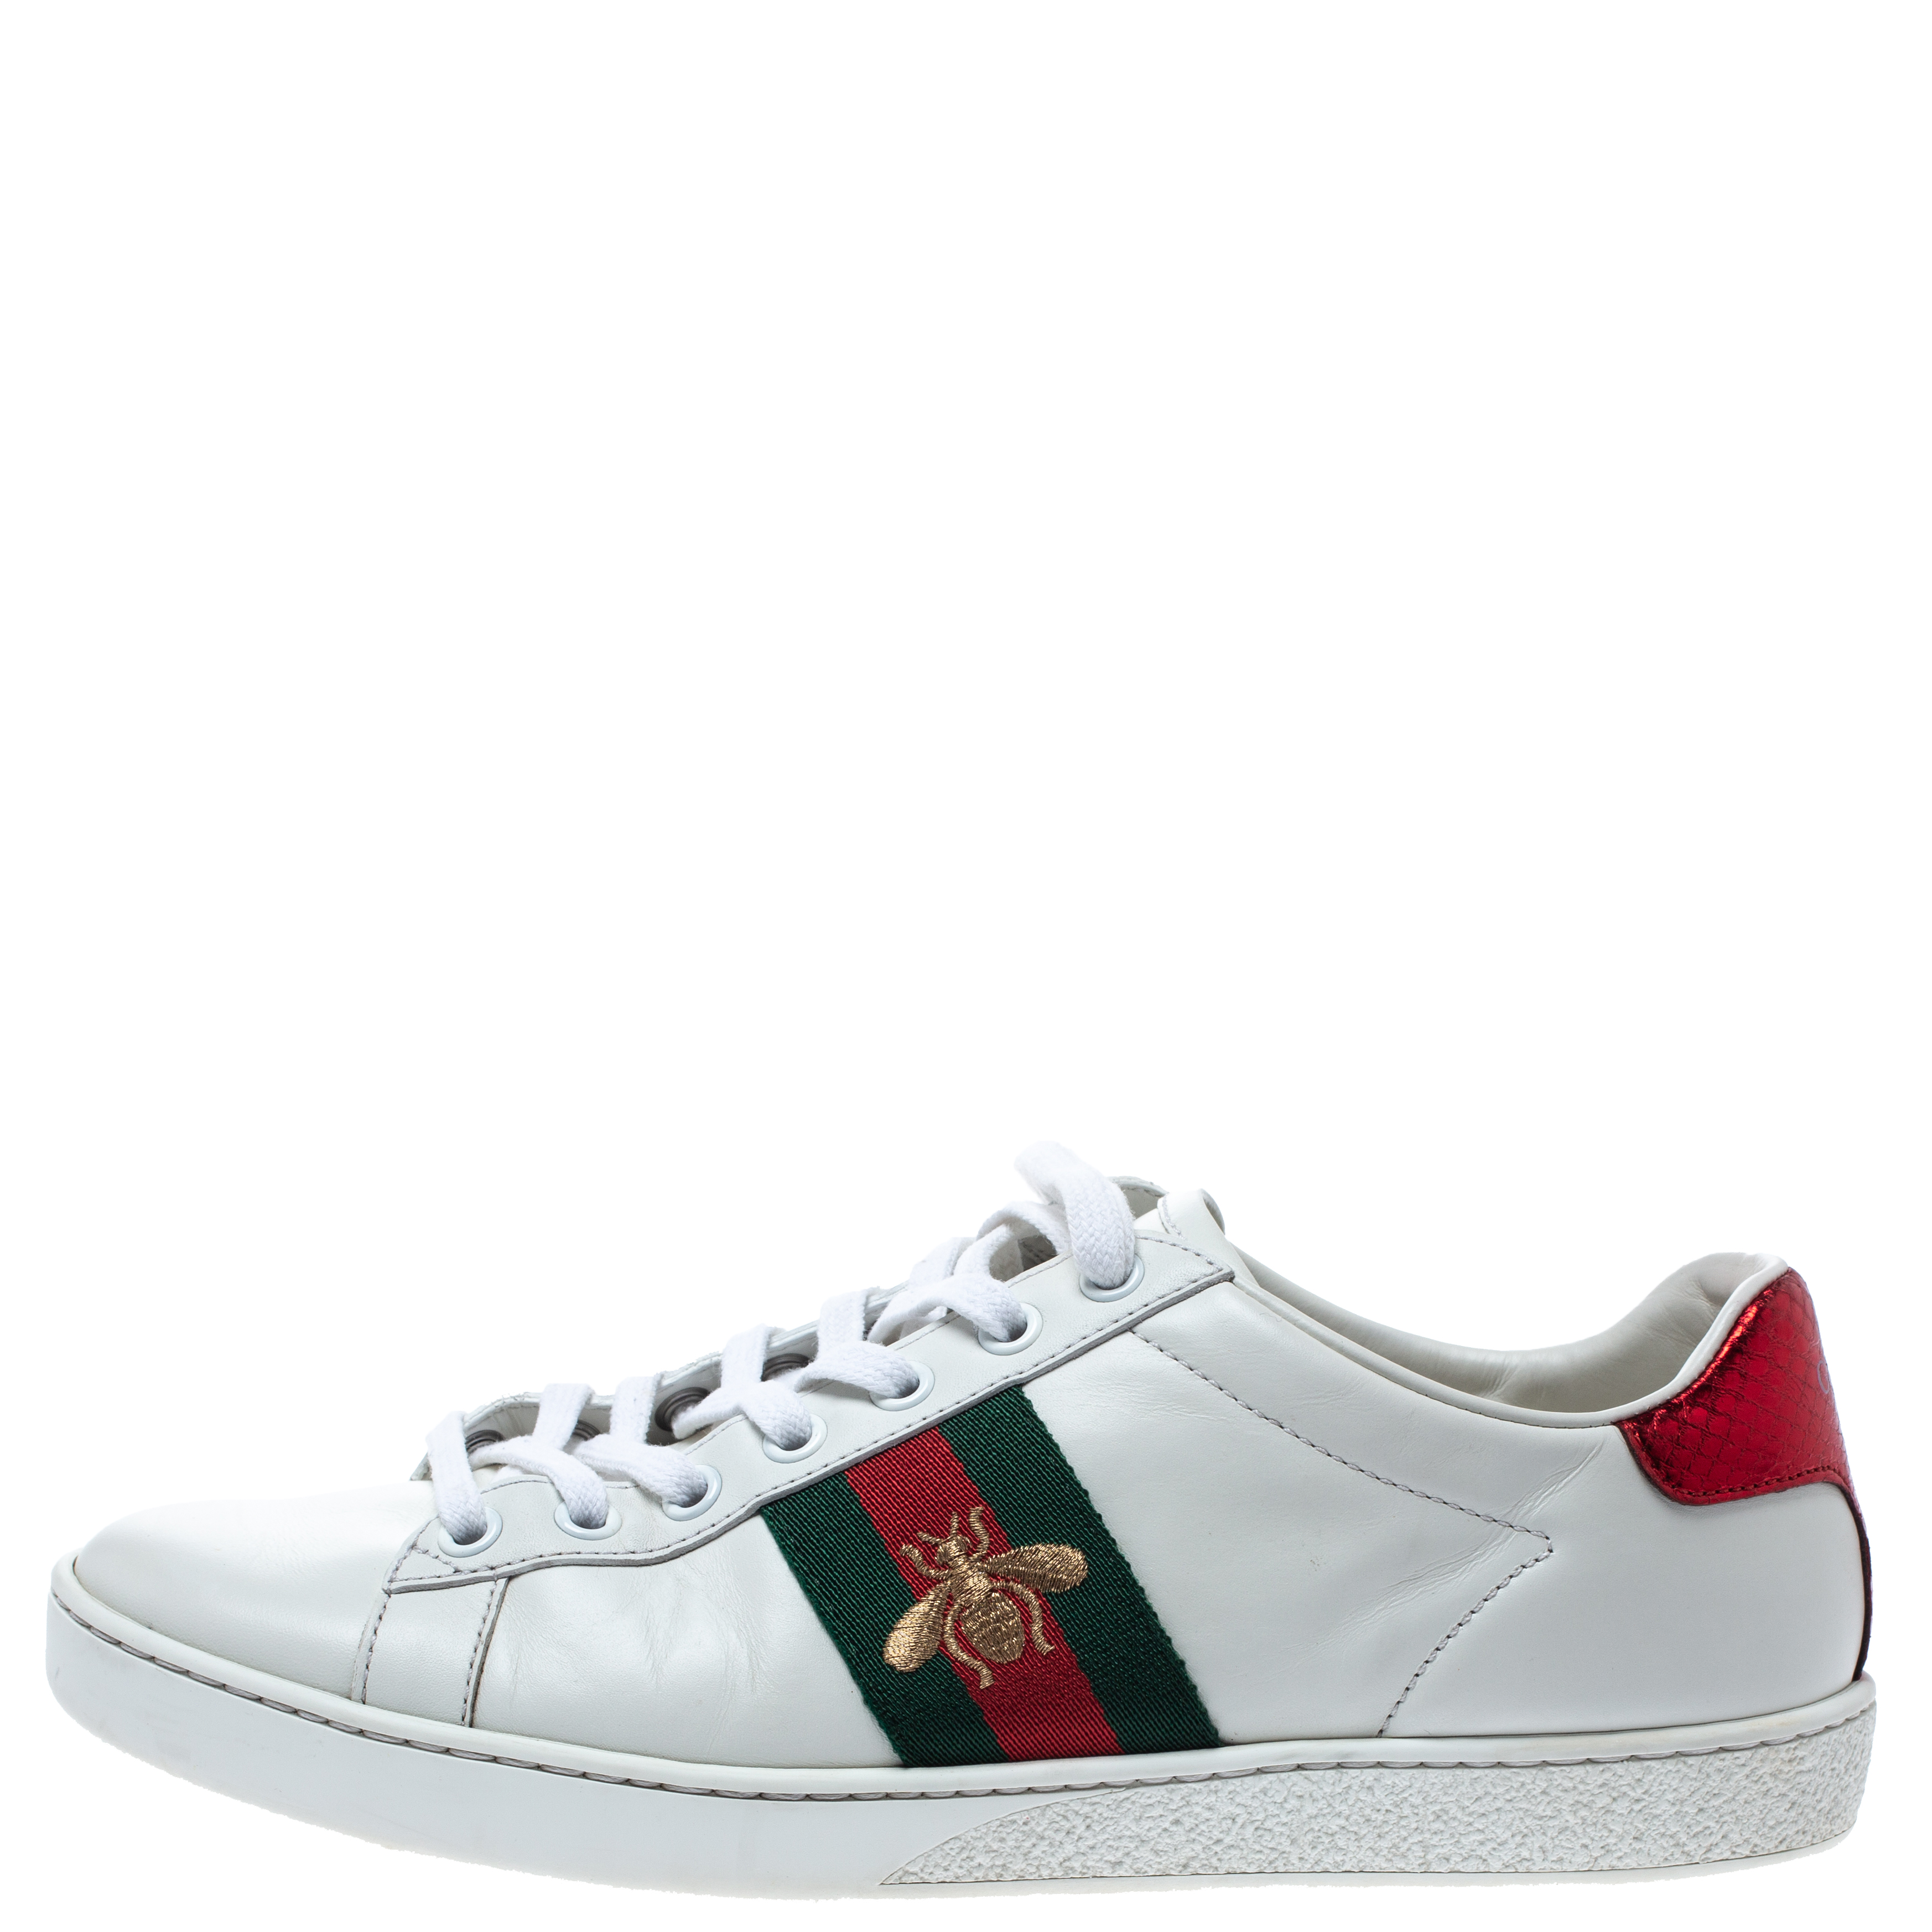 Gucci White Leather Ace Web Detail Low Top Sneakers Size